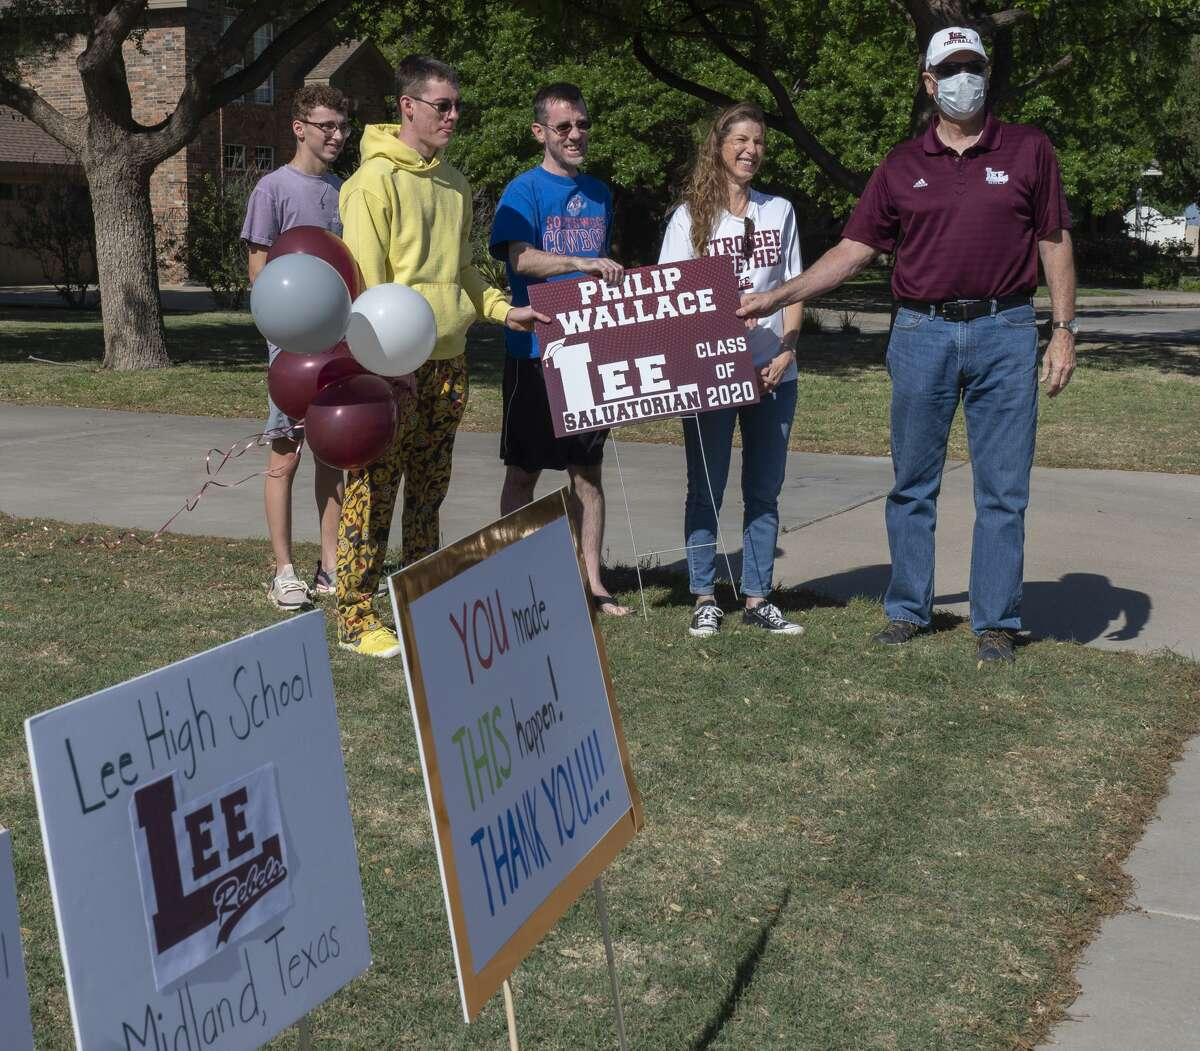 Lee High administrators and counselors caravan through town 04/24/2020 stopping to honor the top 10 seniors of 2020. Principal Stan VanHoozer presents PJ Wallace the #2, salutatorian, senior for LHS. Tim Fischer/Reporter-Telegram